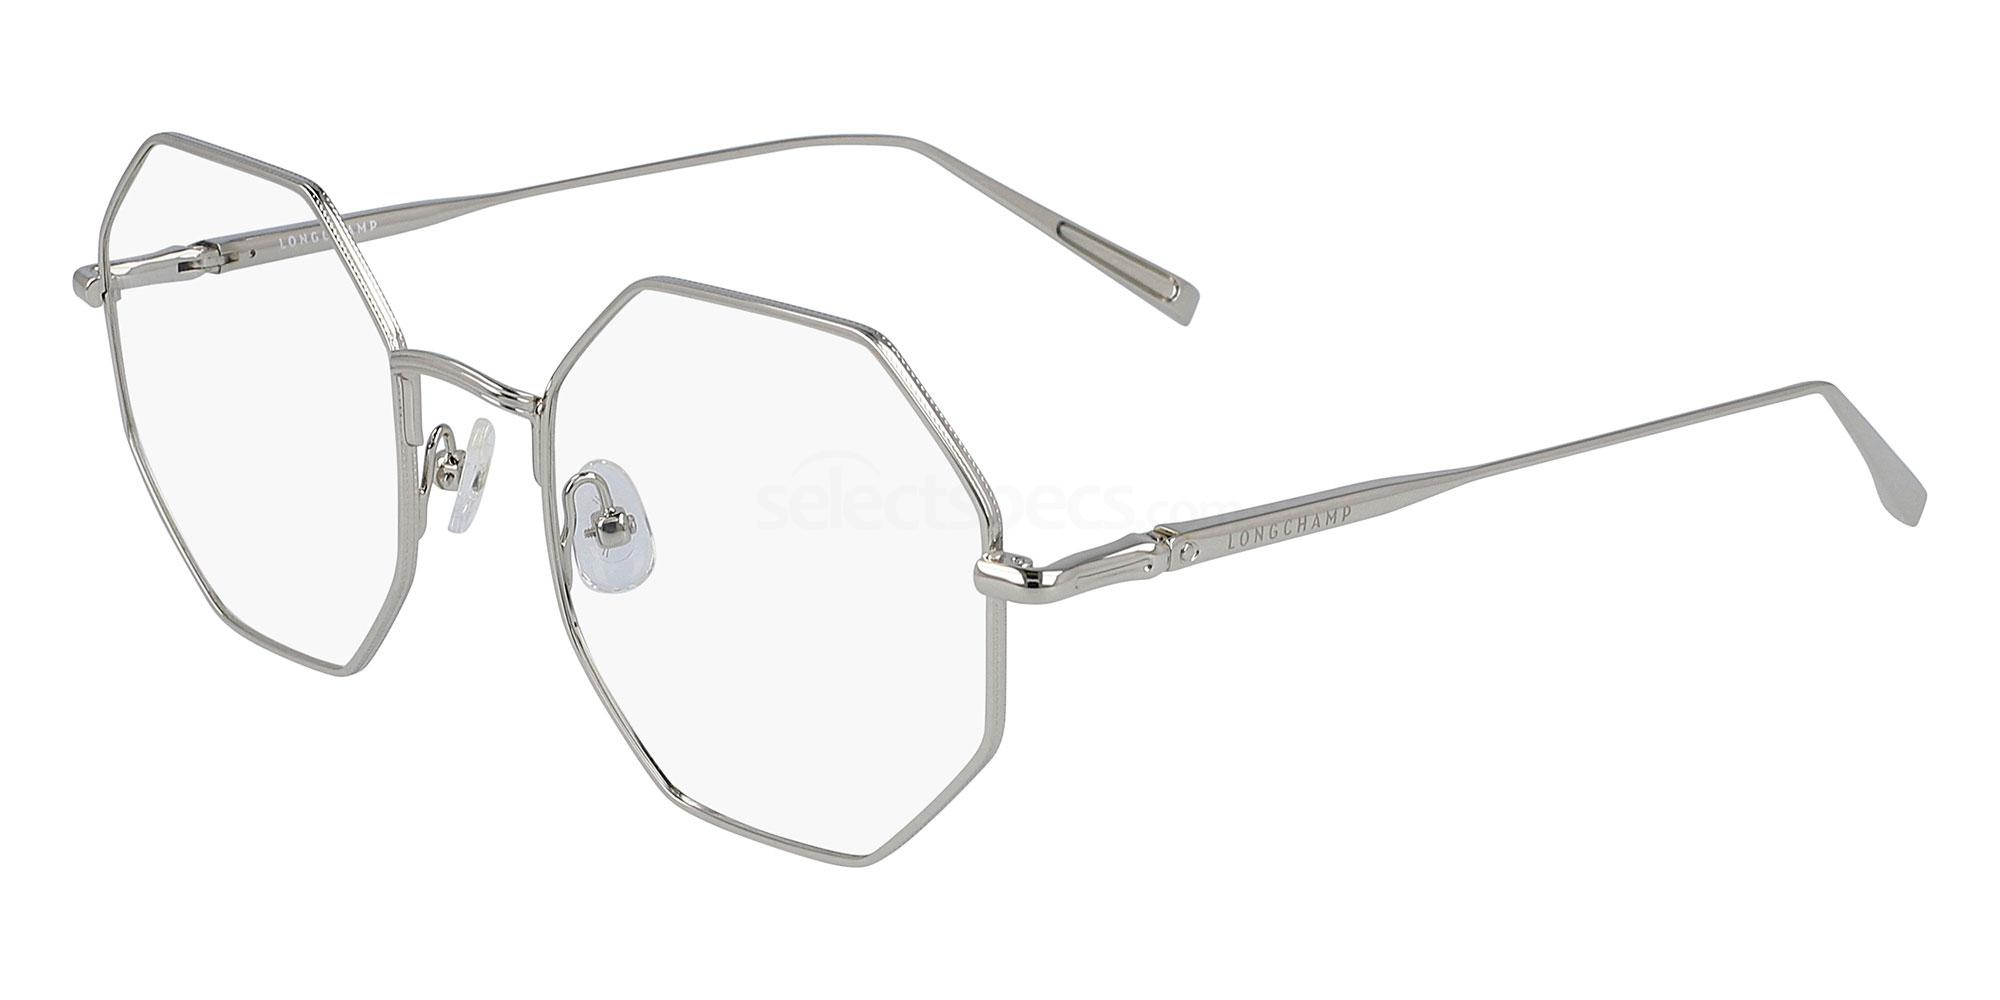 715 LO2113 Glasses, LONGCHAMP